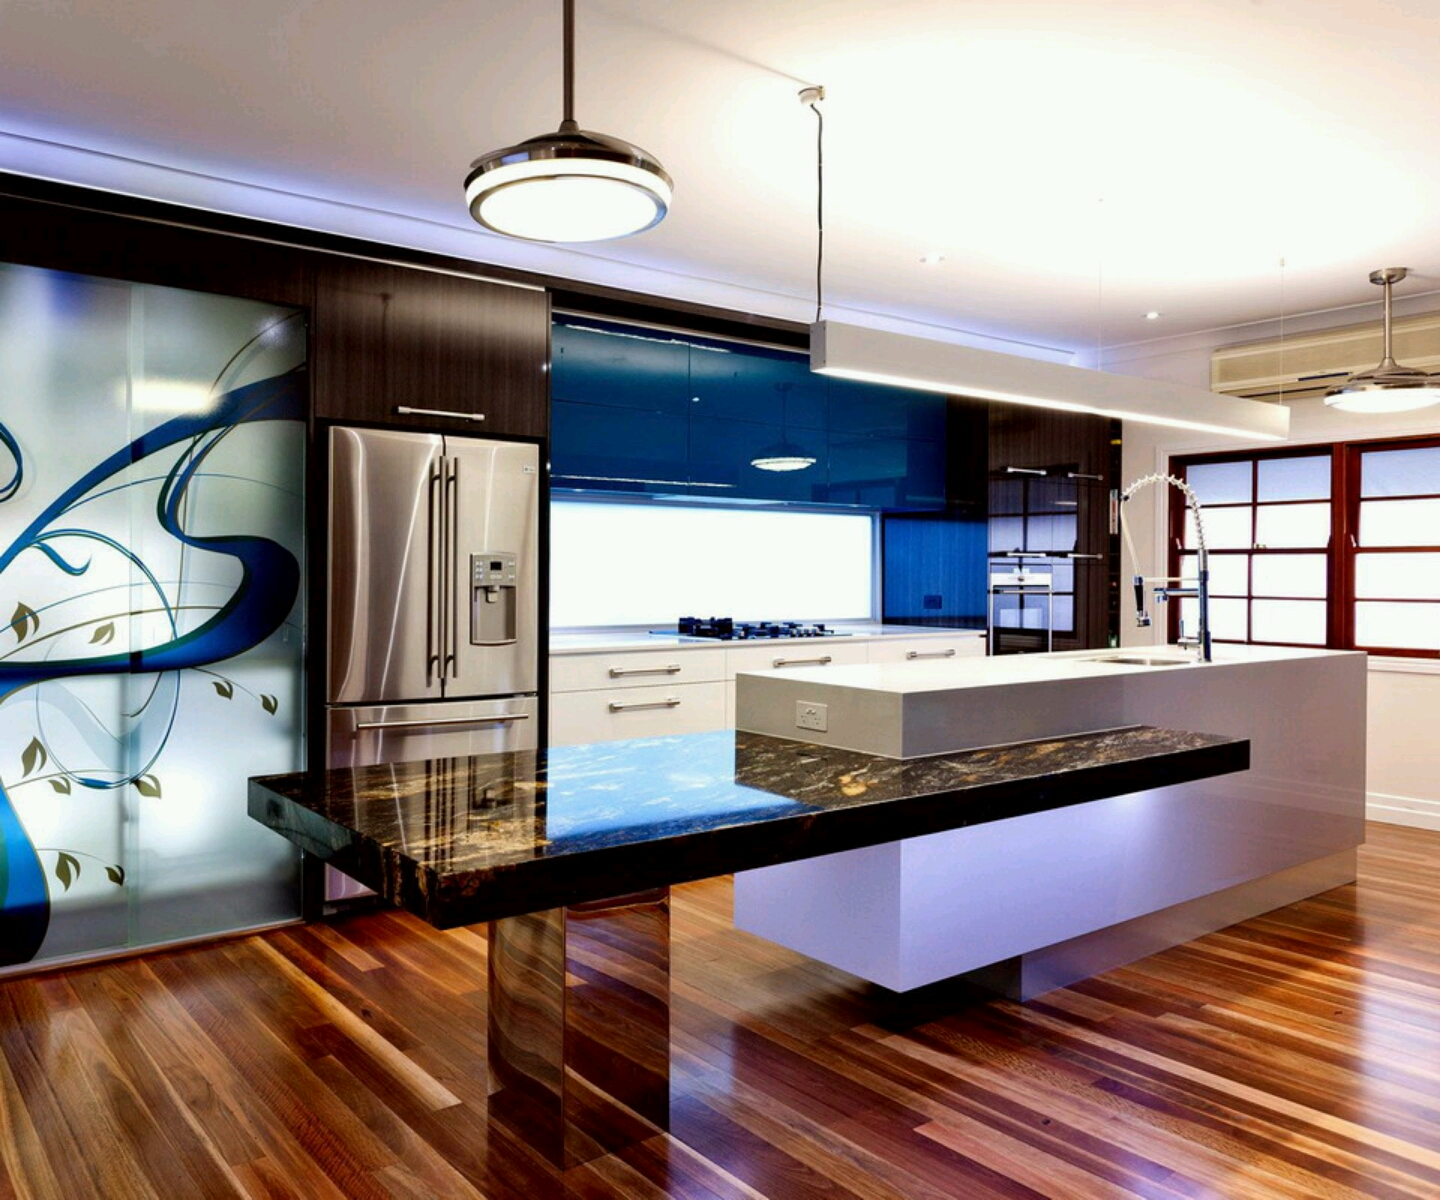 Modern Restaurant Kitchen Design 25 Kitchen Design Inspiration Ideas